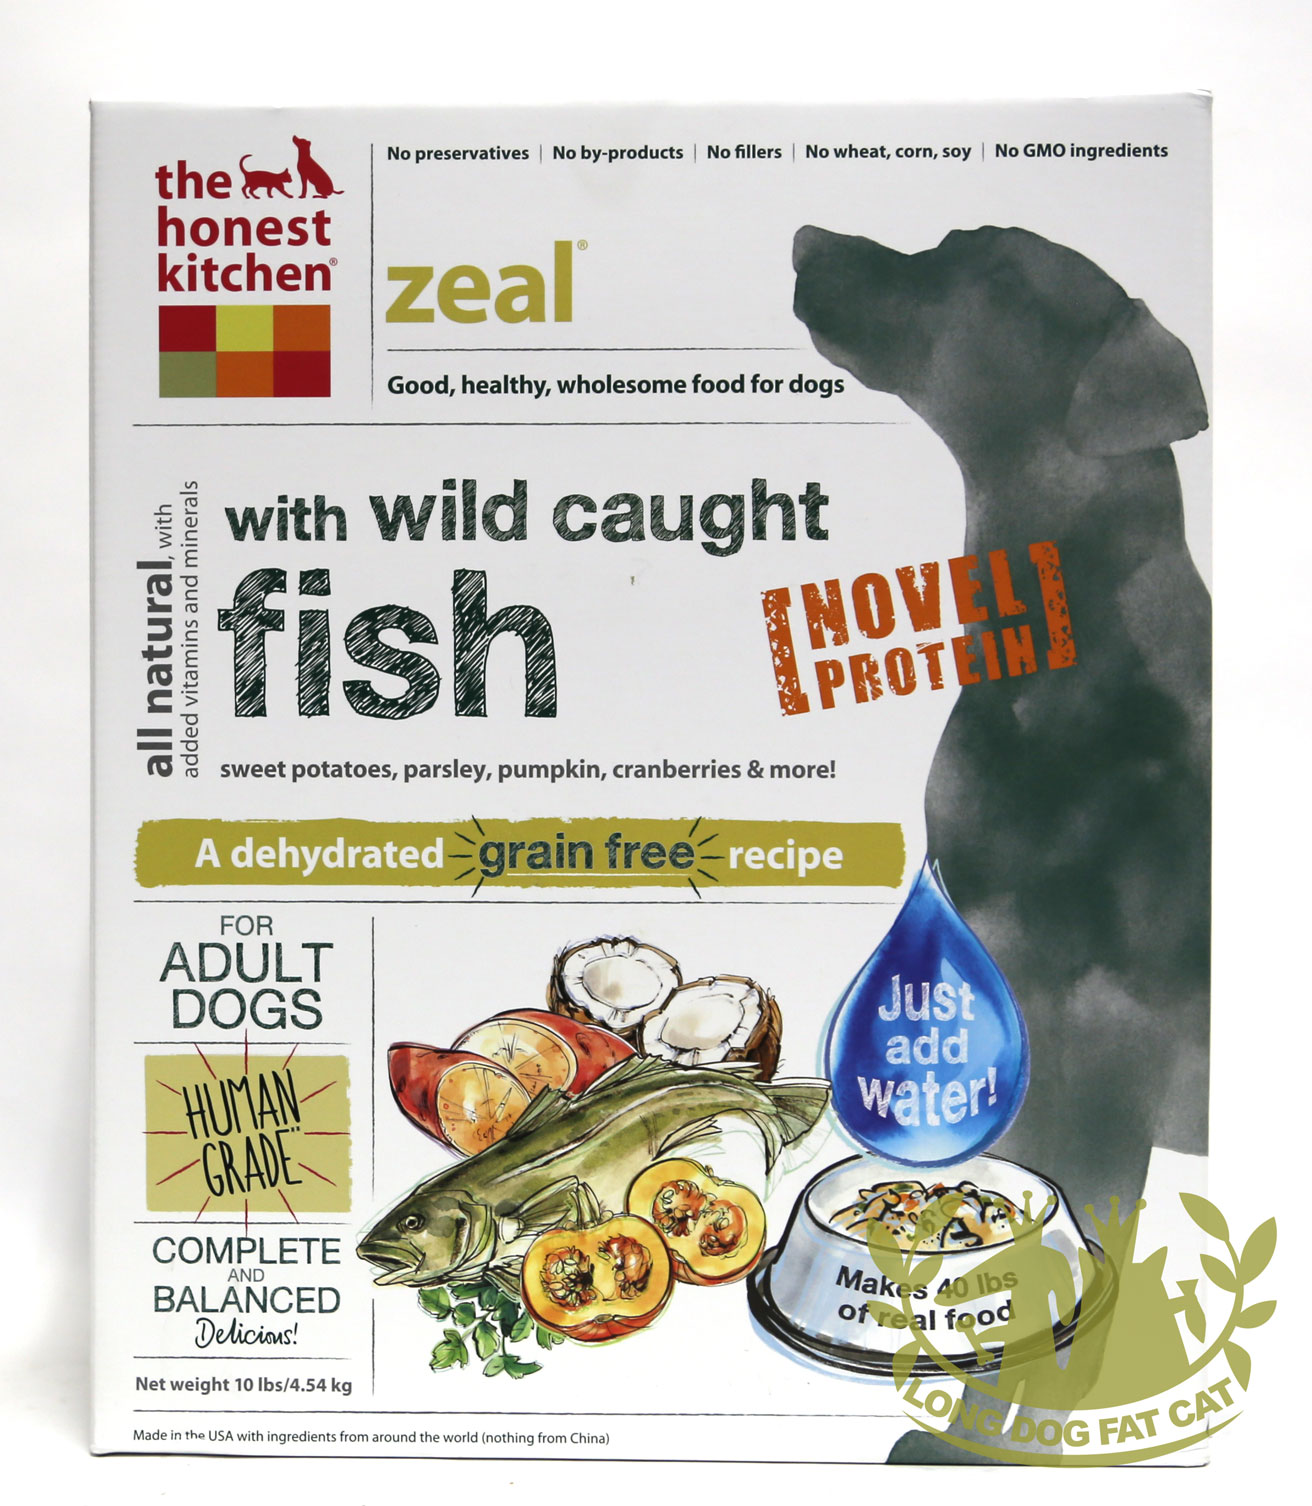 Kitchen Freeze Dried Zeal Dog Food White Fish - Honest kitchen dog food